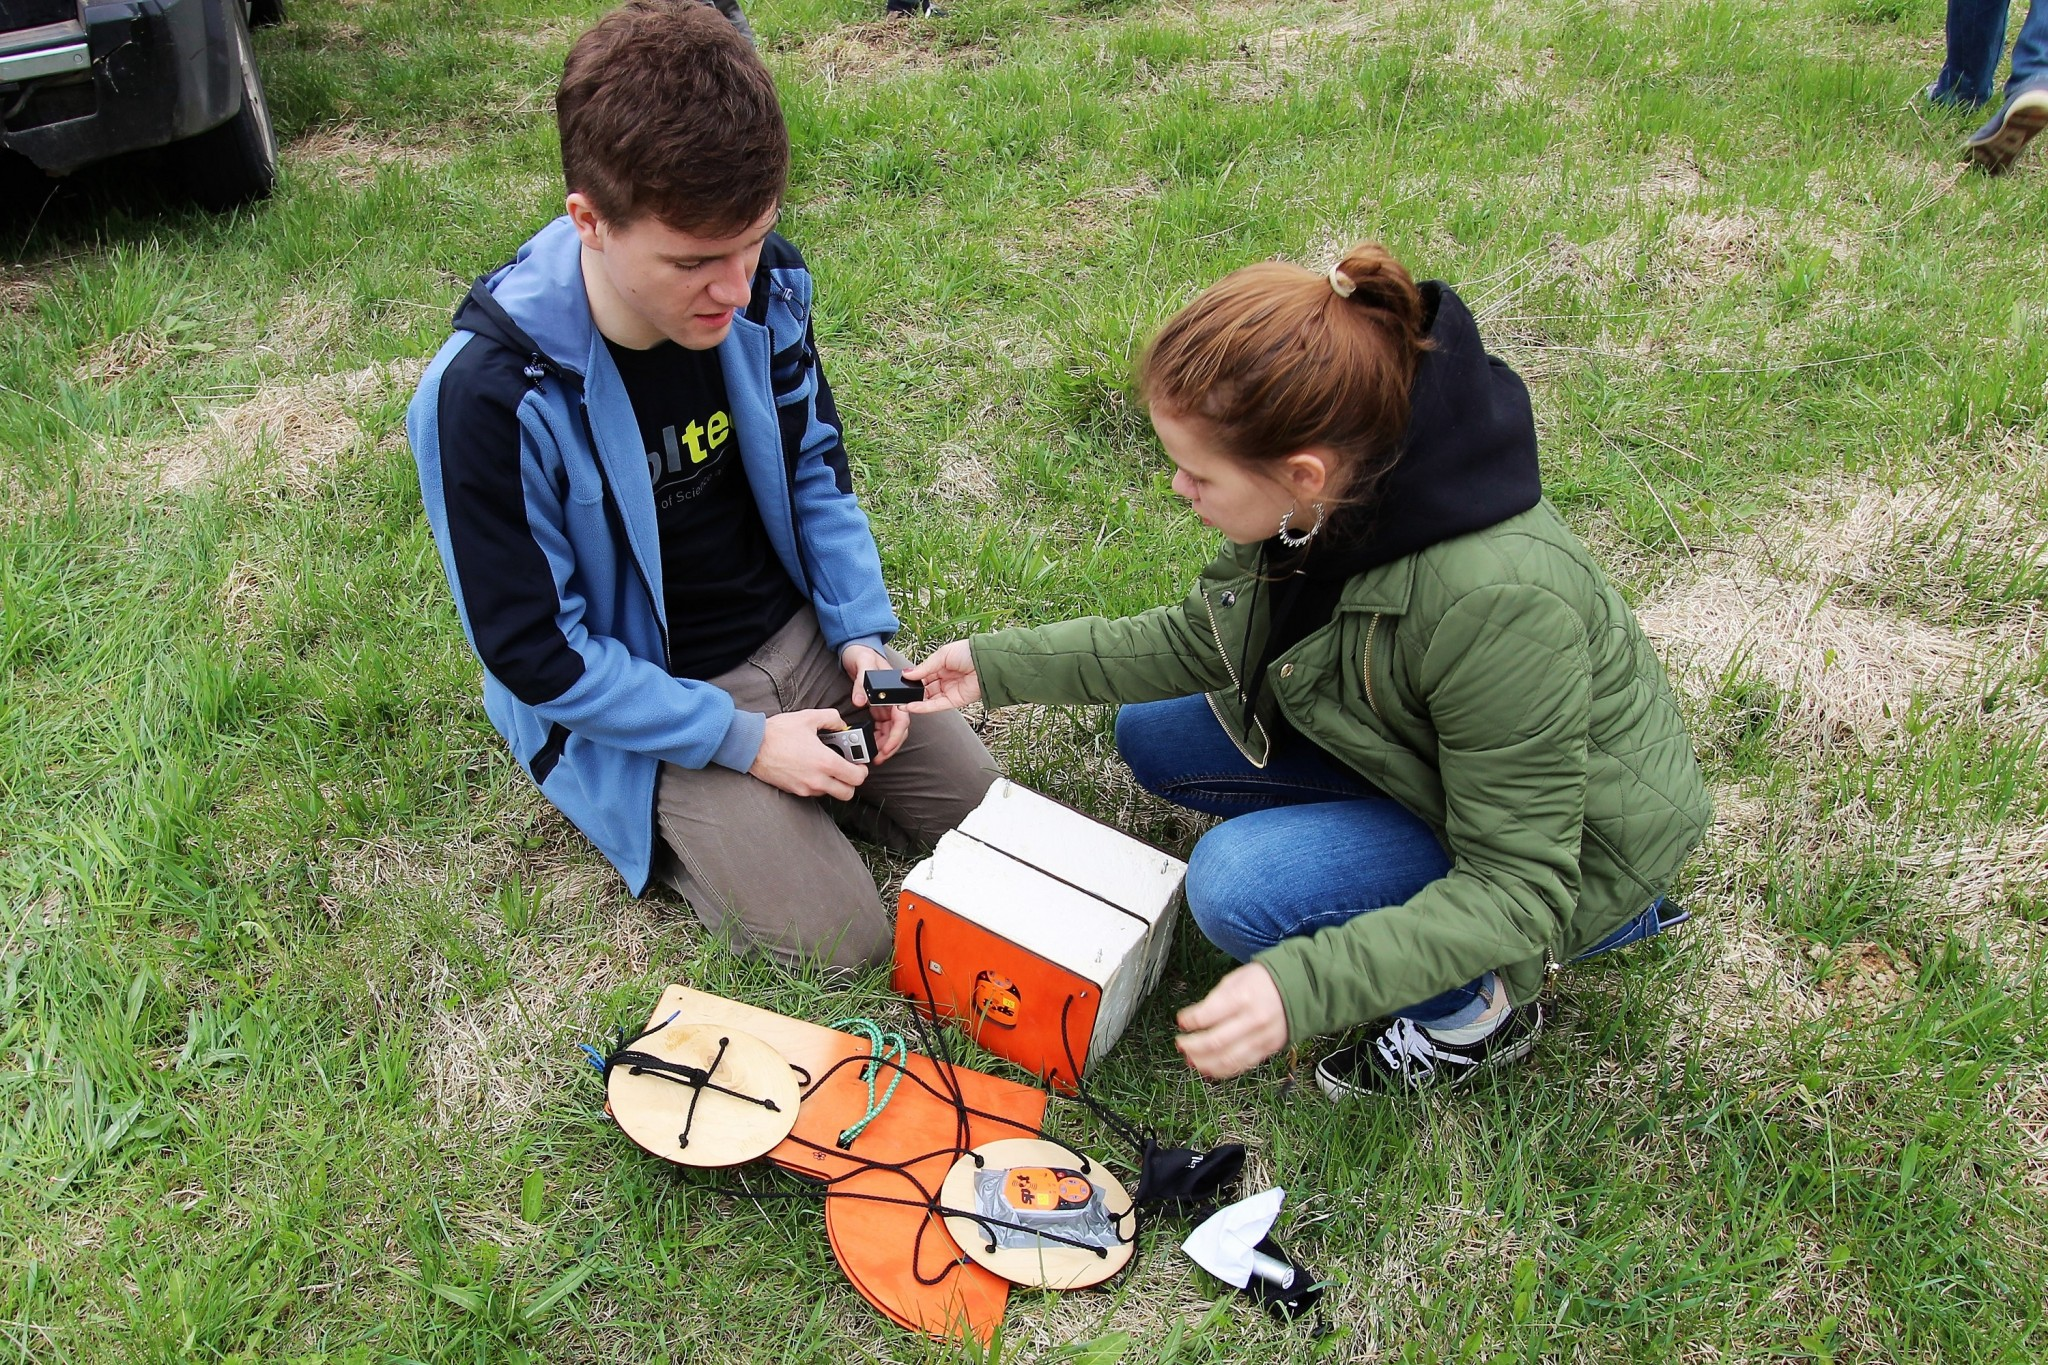 Ilya Yuskevich and Ksenia Smirnova work on their payload as they prepare to launch. Photo: Skoltech.